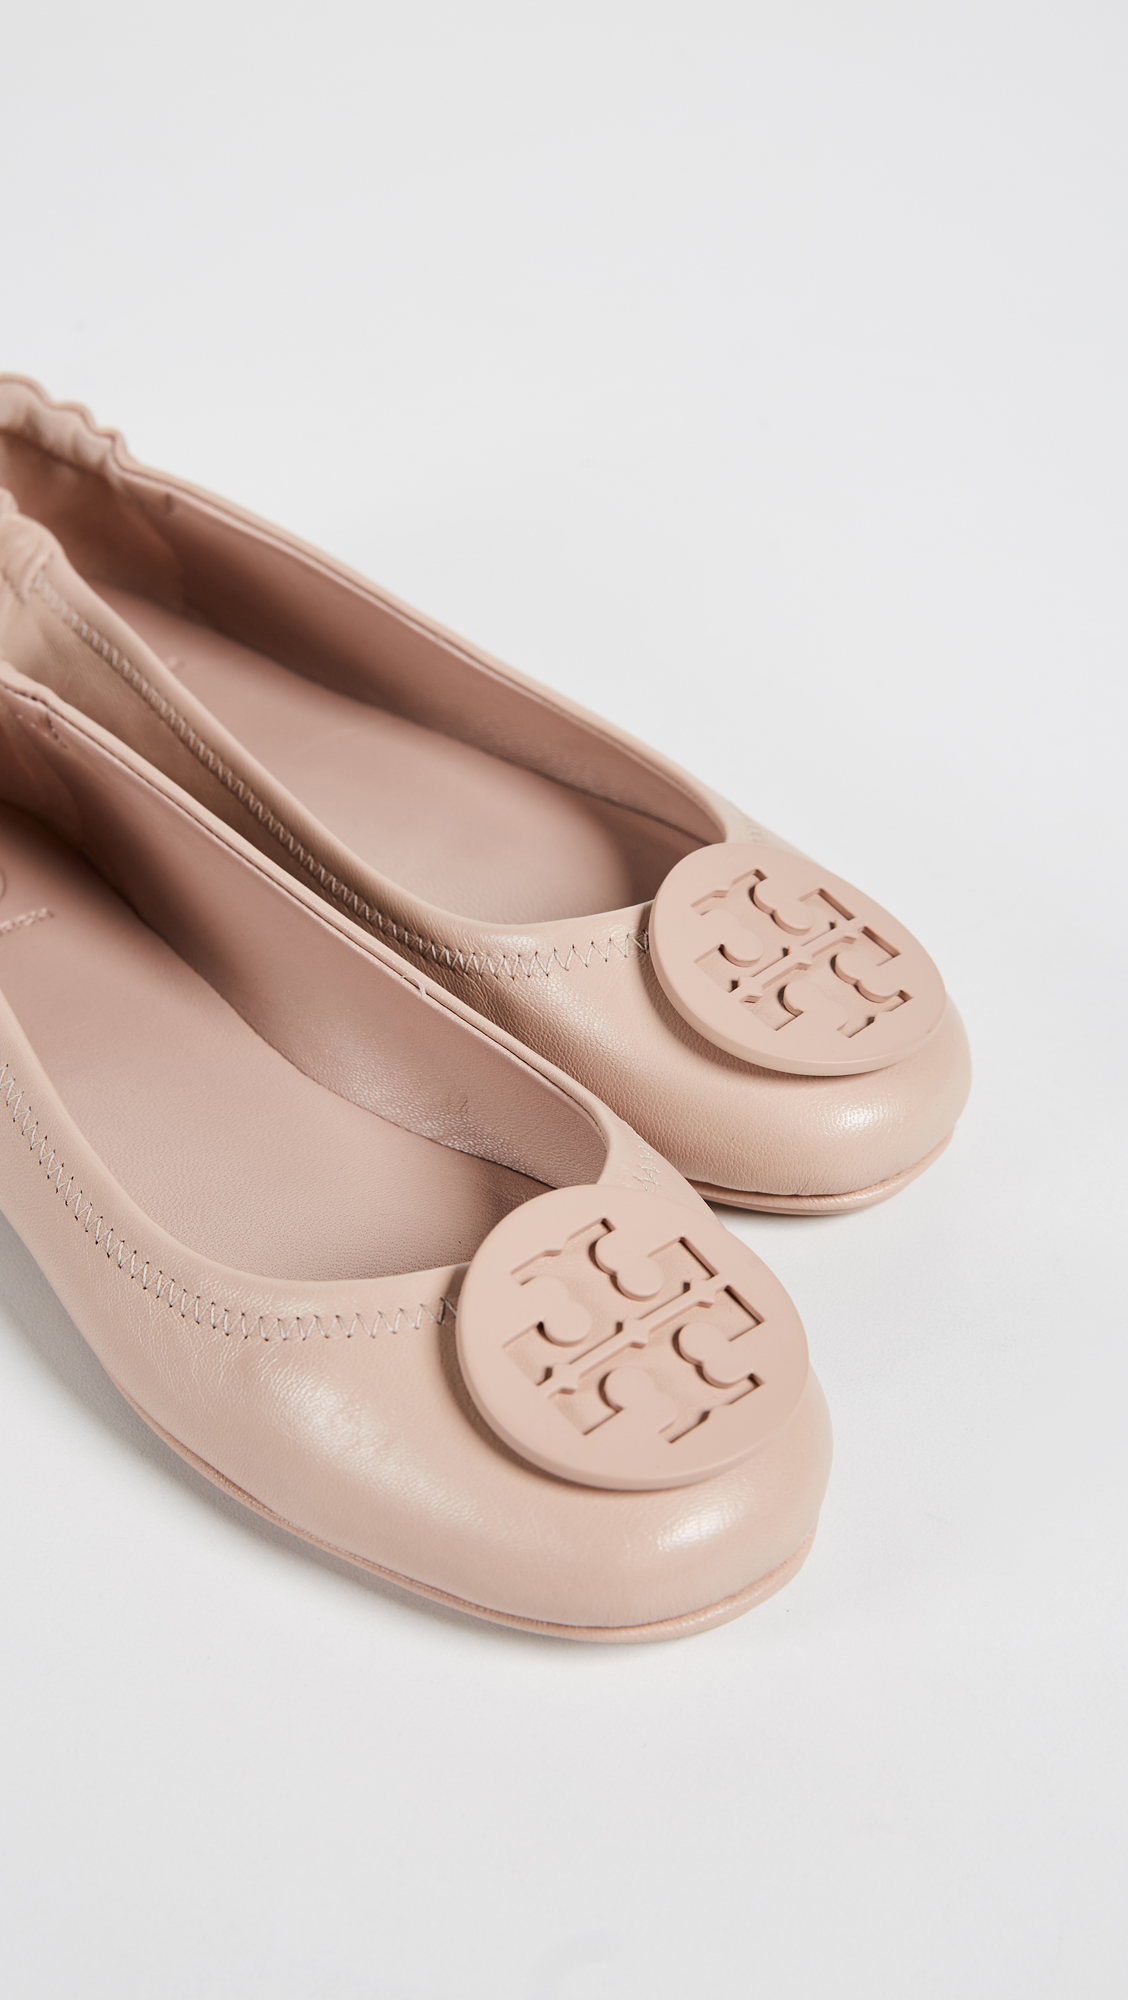 b32e63825 Tory Burch Minnie Travel Ballet Flats